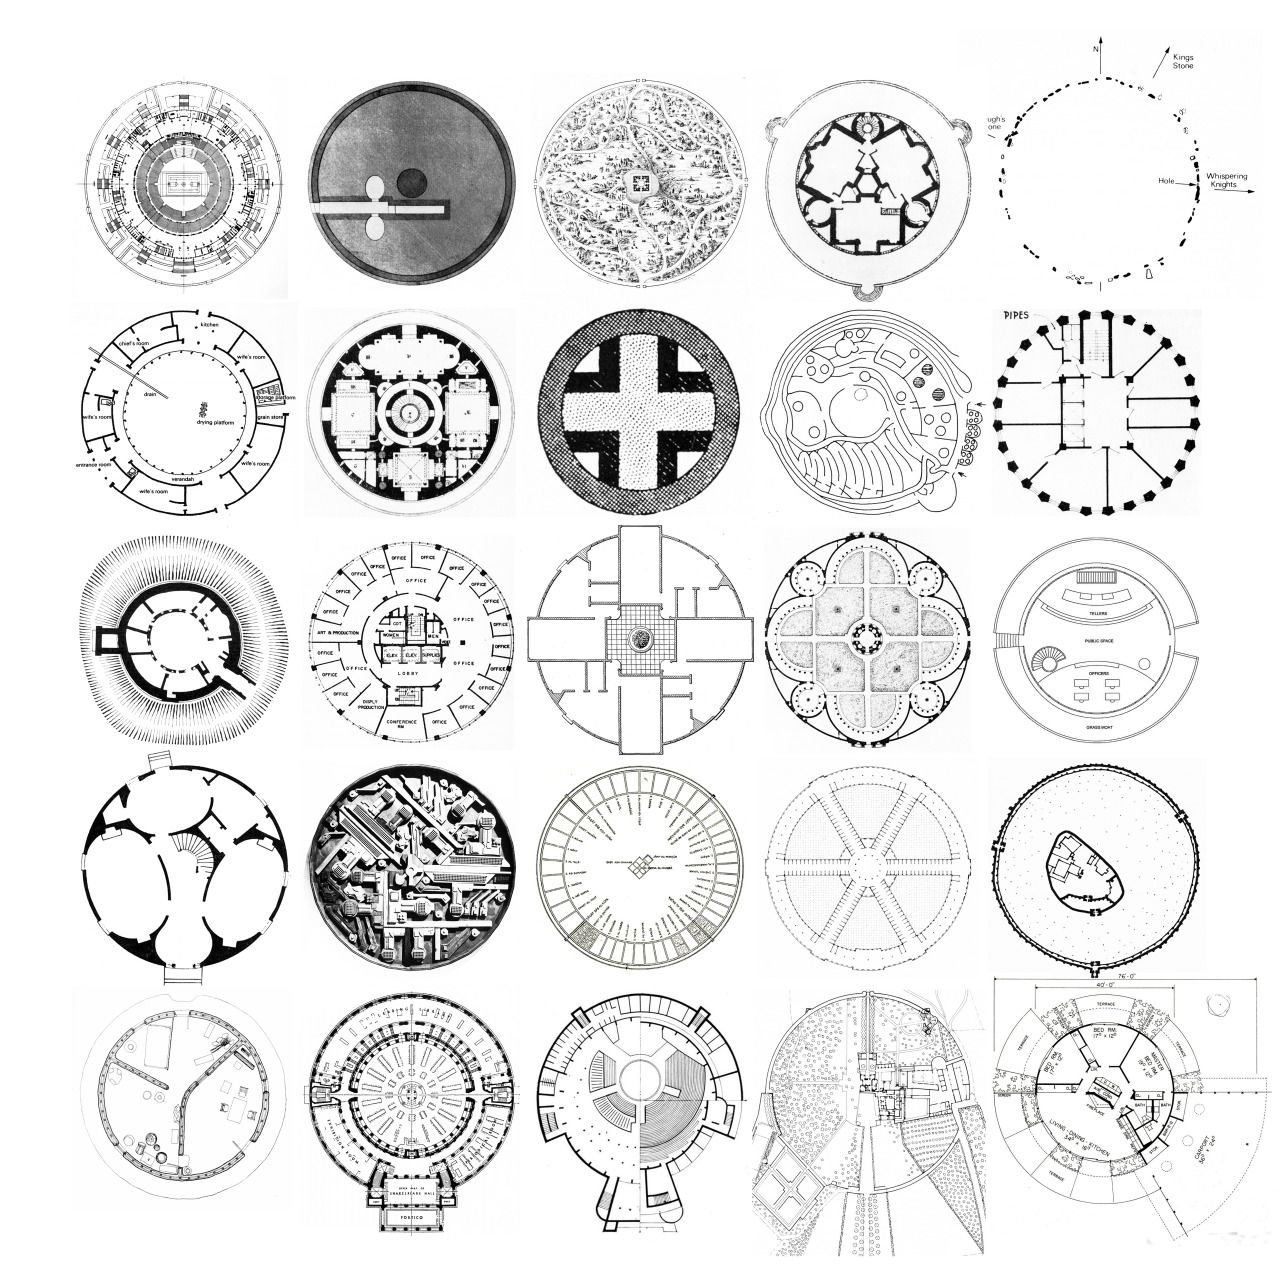 25 Circle Plans From Left To Right Pier Luigi Nervi